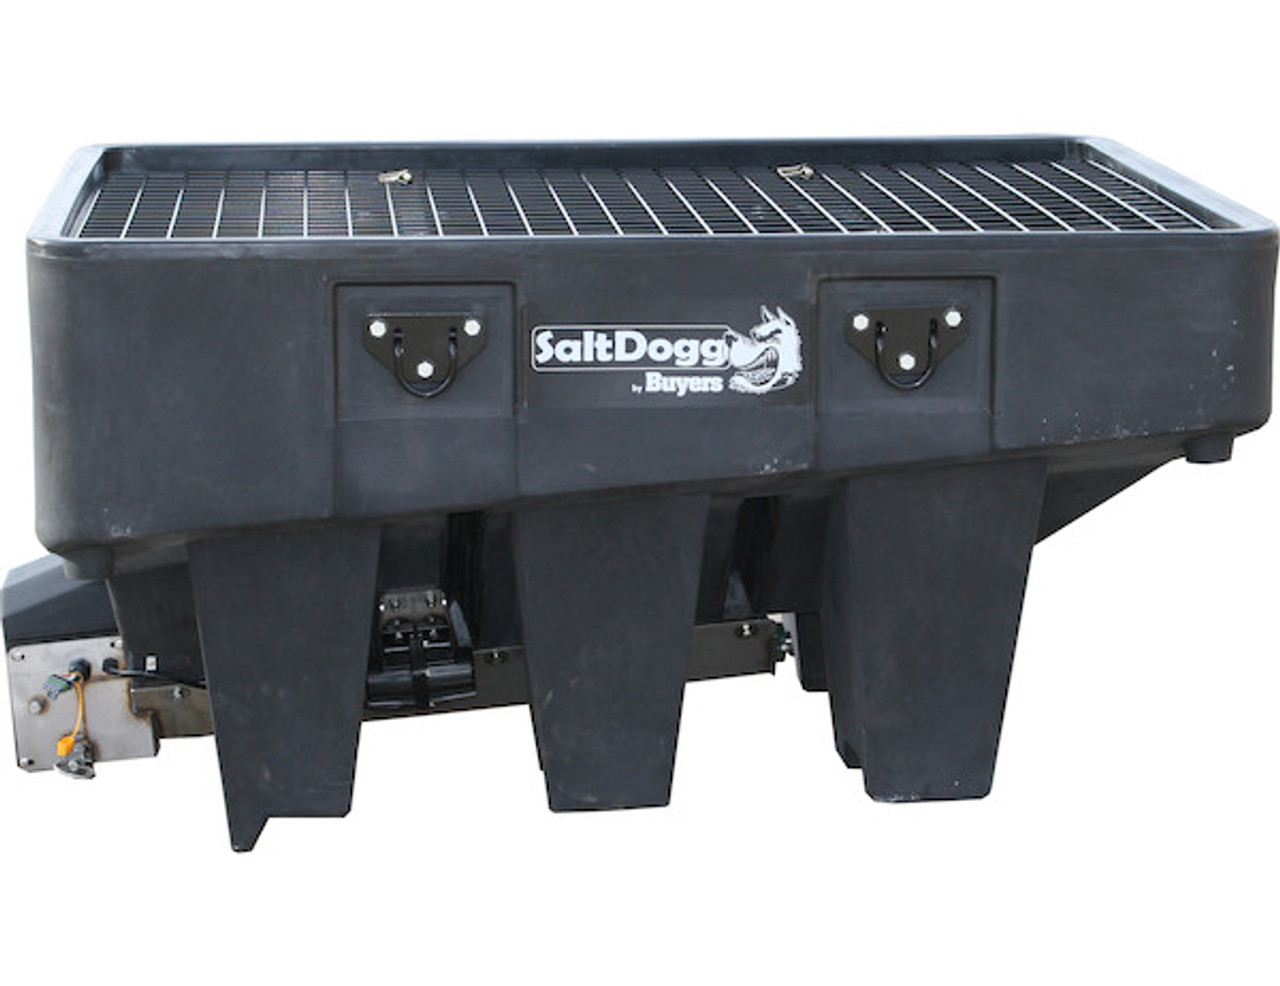 SHPE1000X BUYERS SaltDogg 1.0 Cubic Yard Electric Black Poly Hopper Spreader - Extended Chute 3